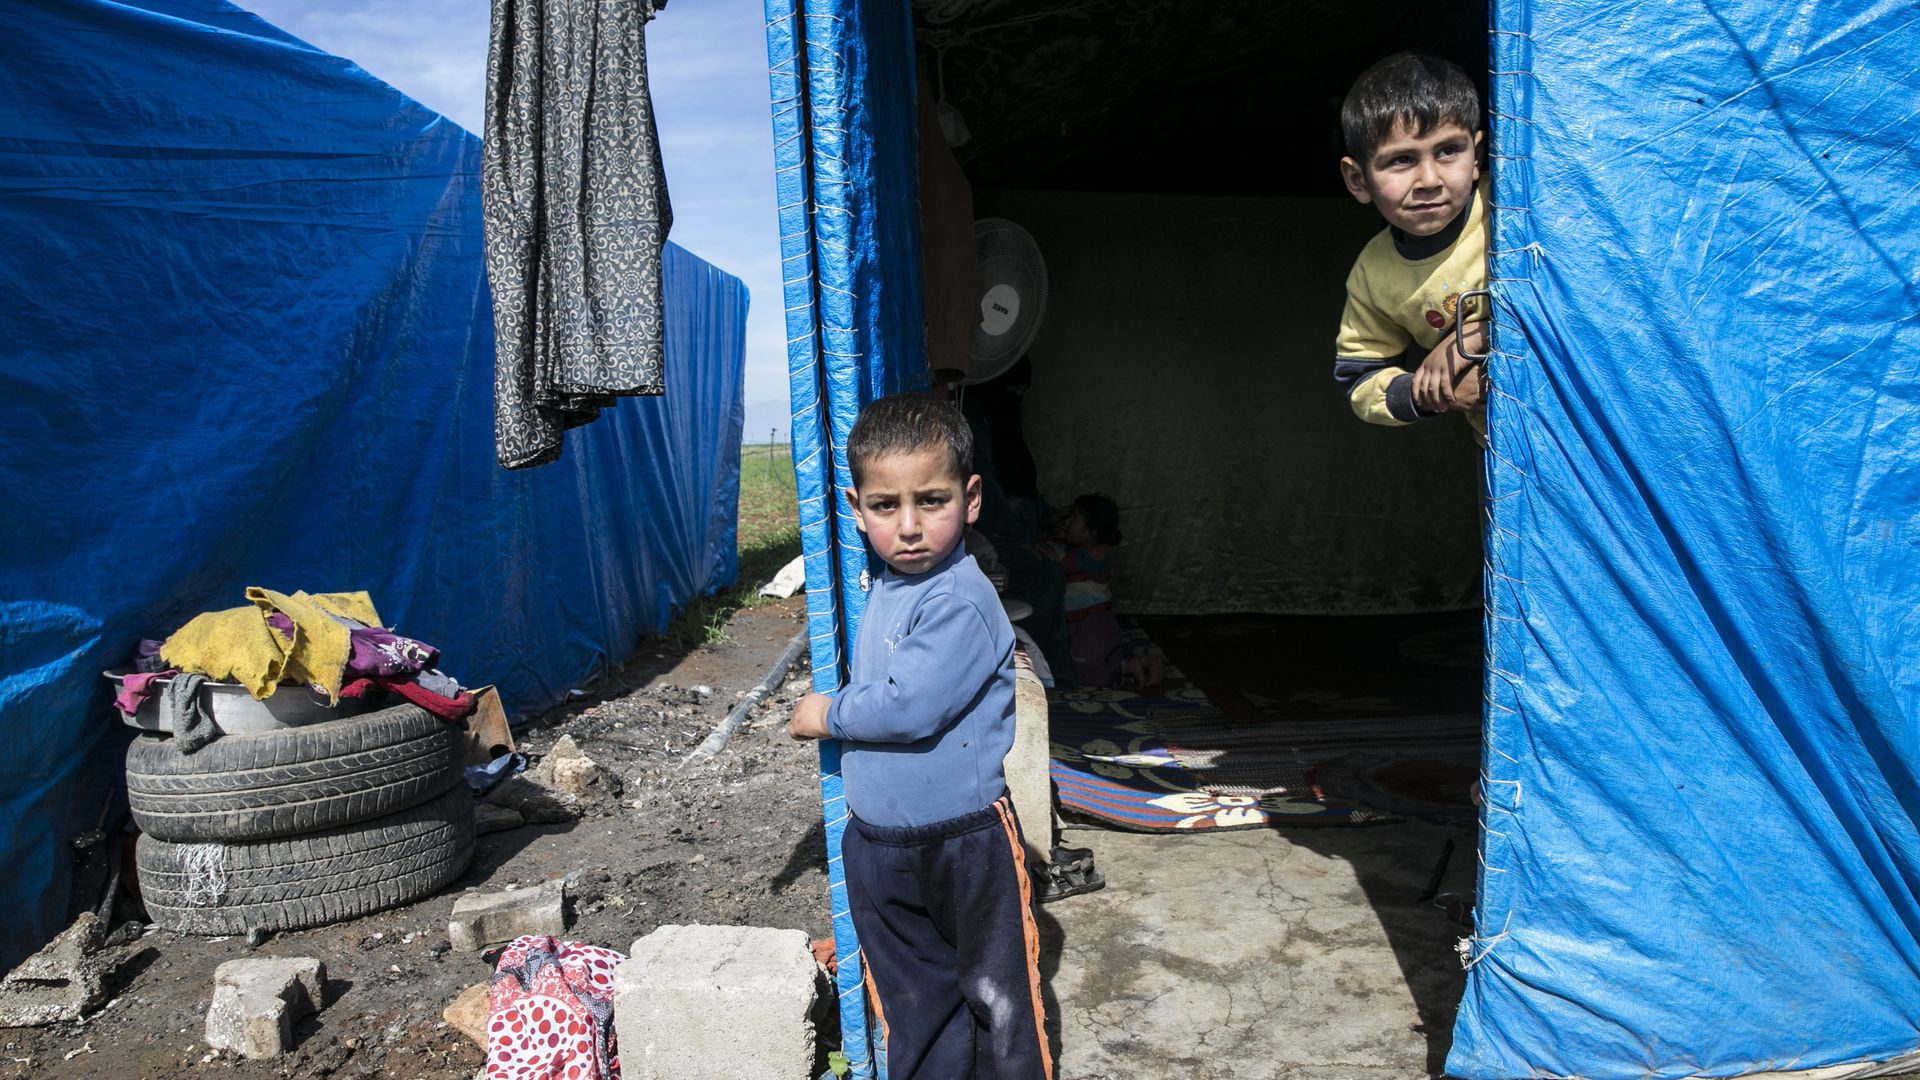 Syrian children next to a tent in a refugee camp